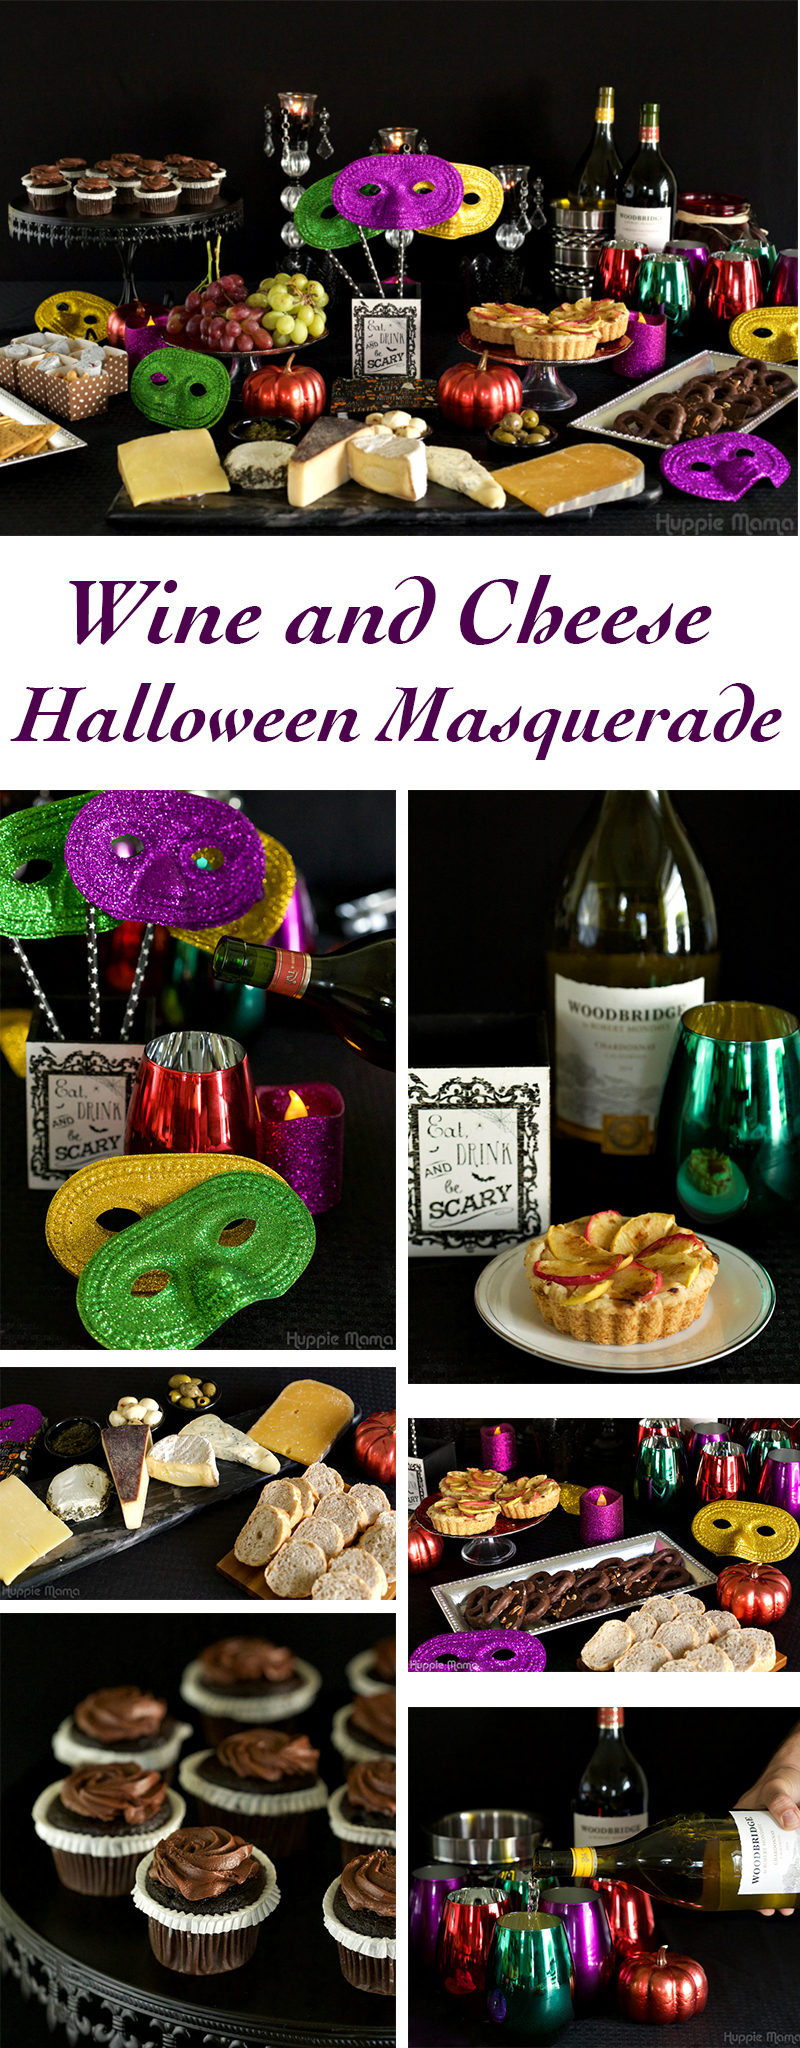 Wine and Cheese Halloween Masquerade Party